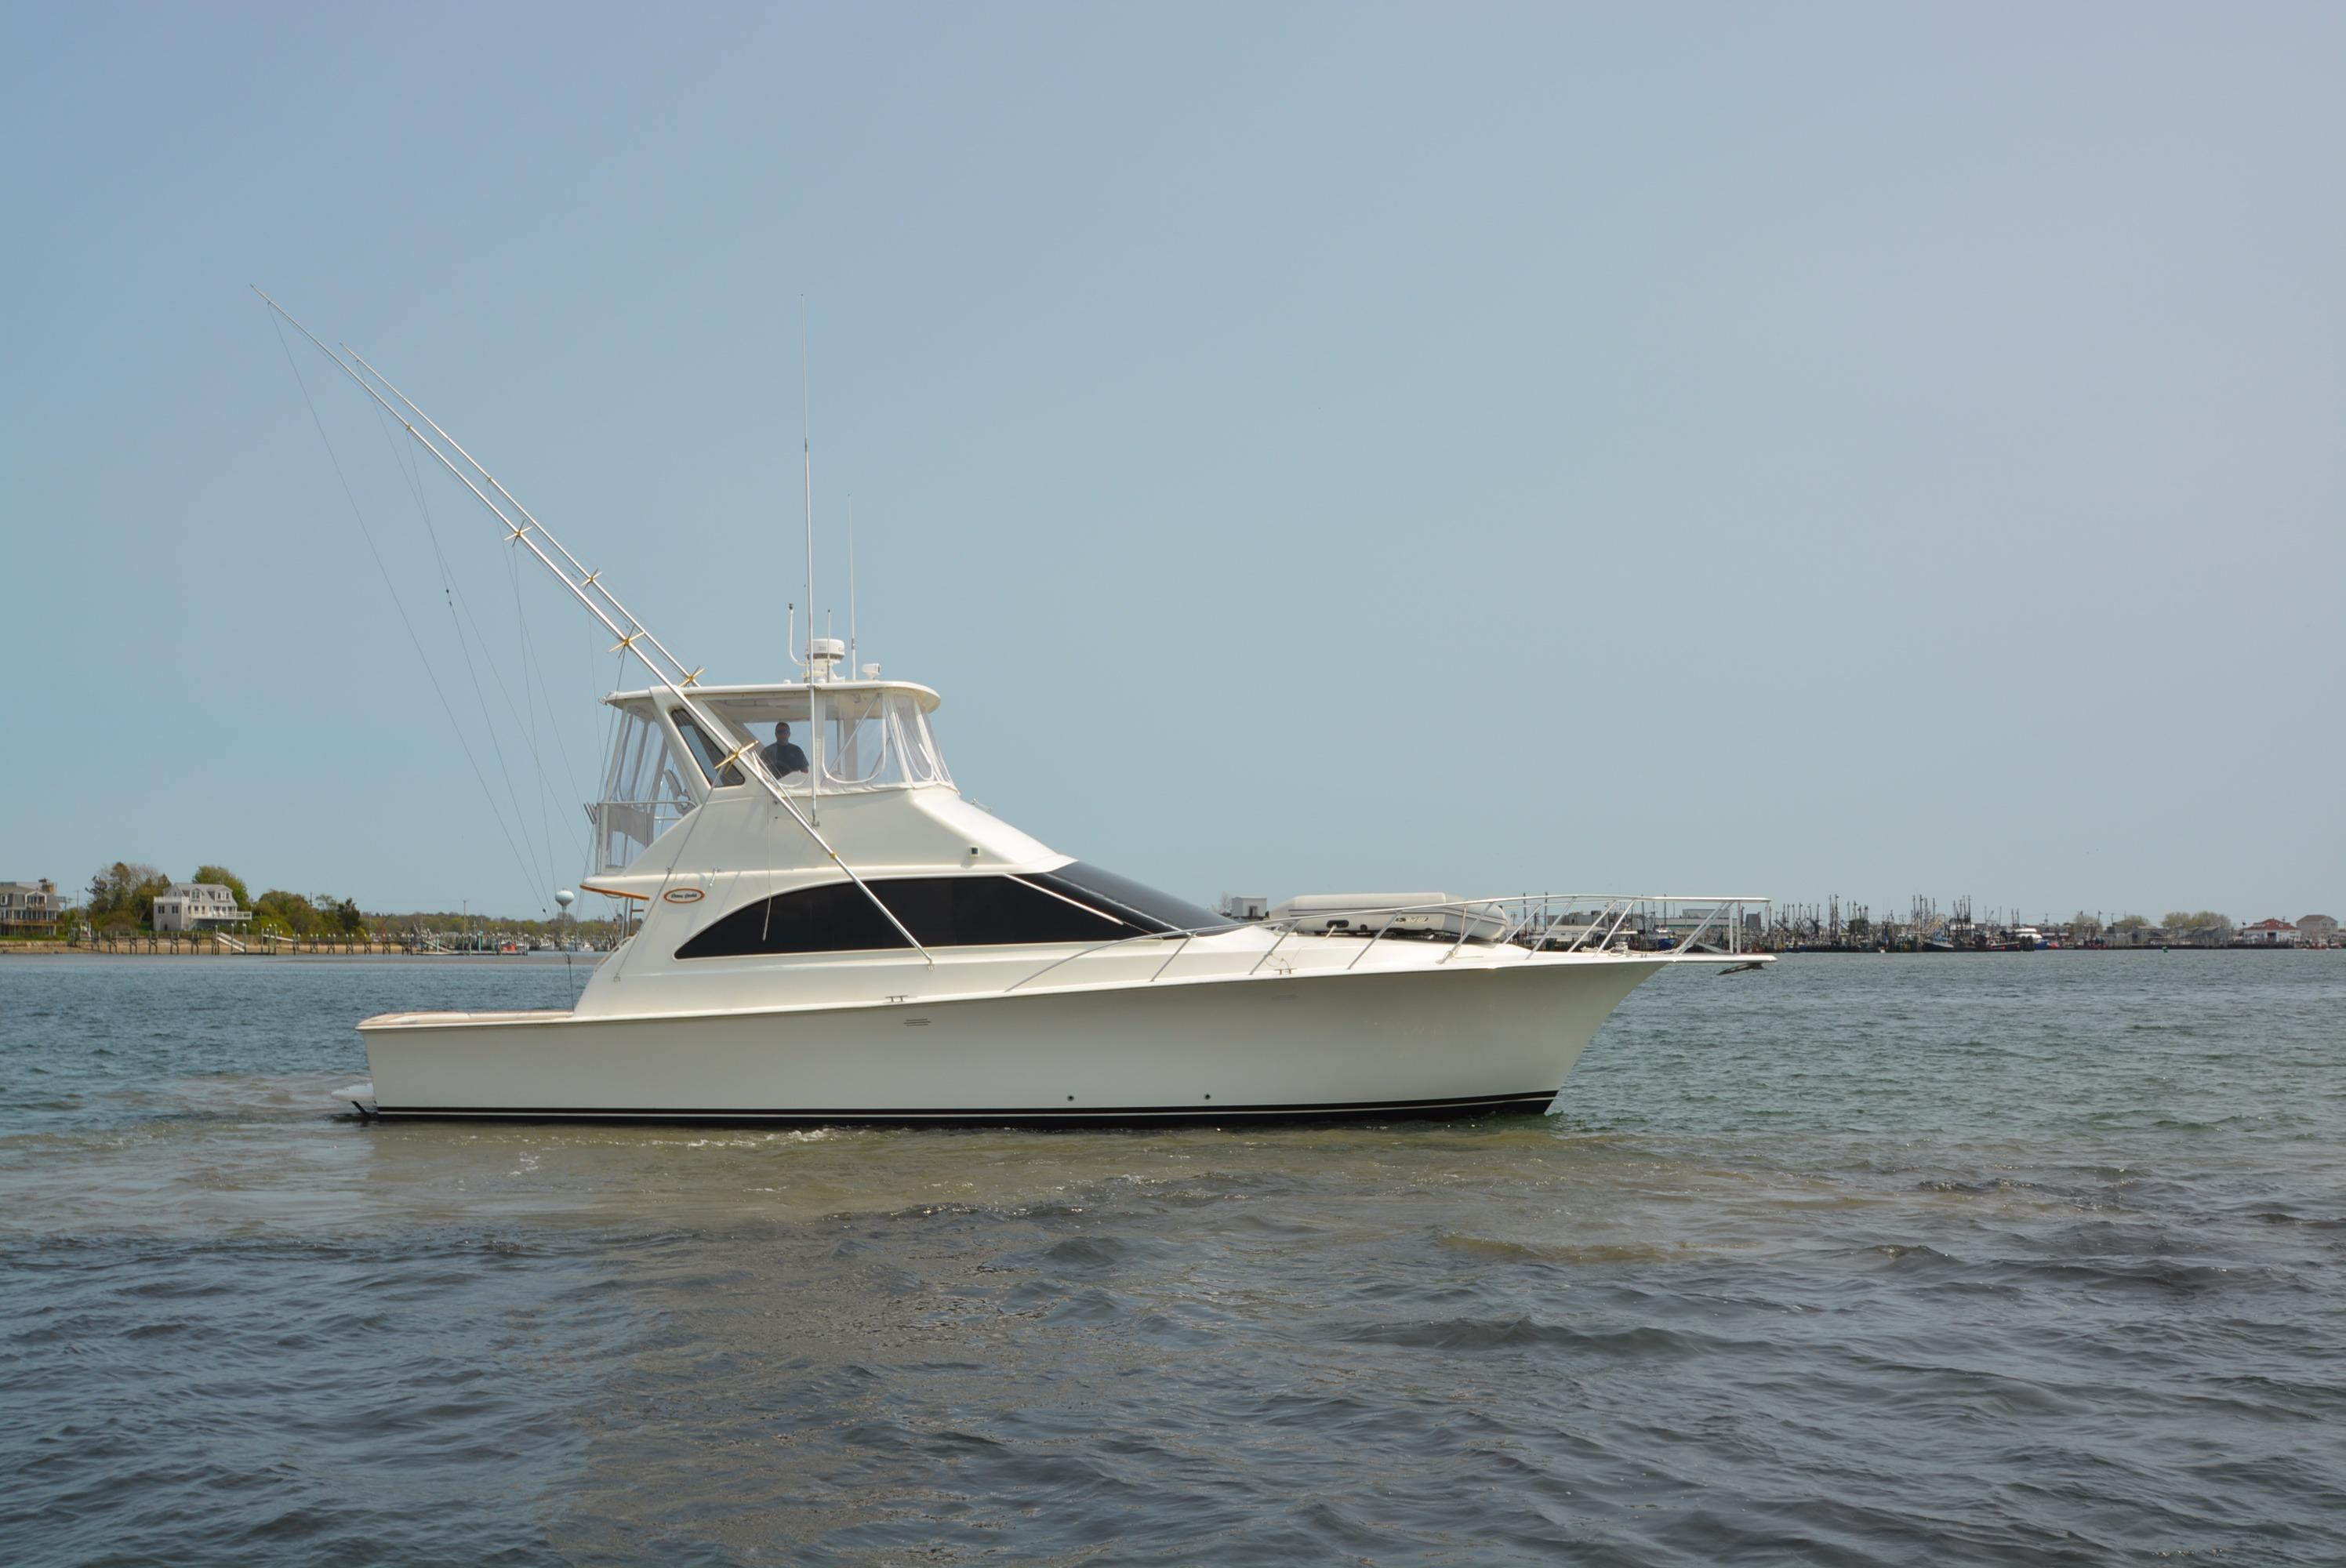 Featured Brokerage Yachts Offshore Yacht Sales In Connecticut Offers A Great Selection Of Used Sportfishing